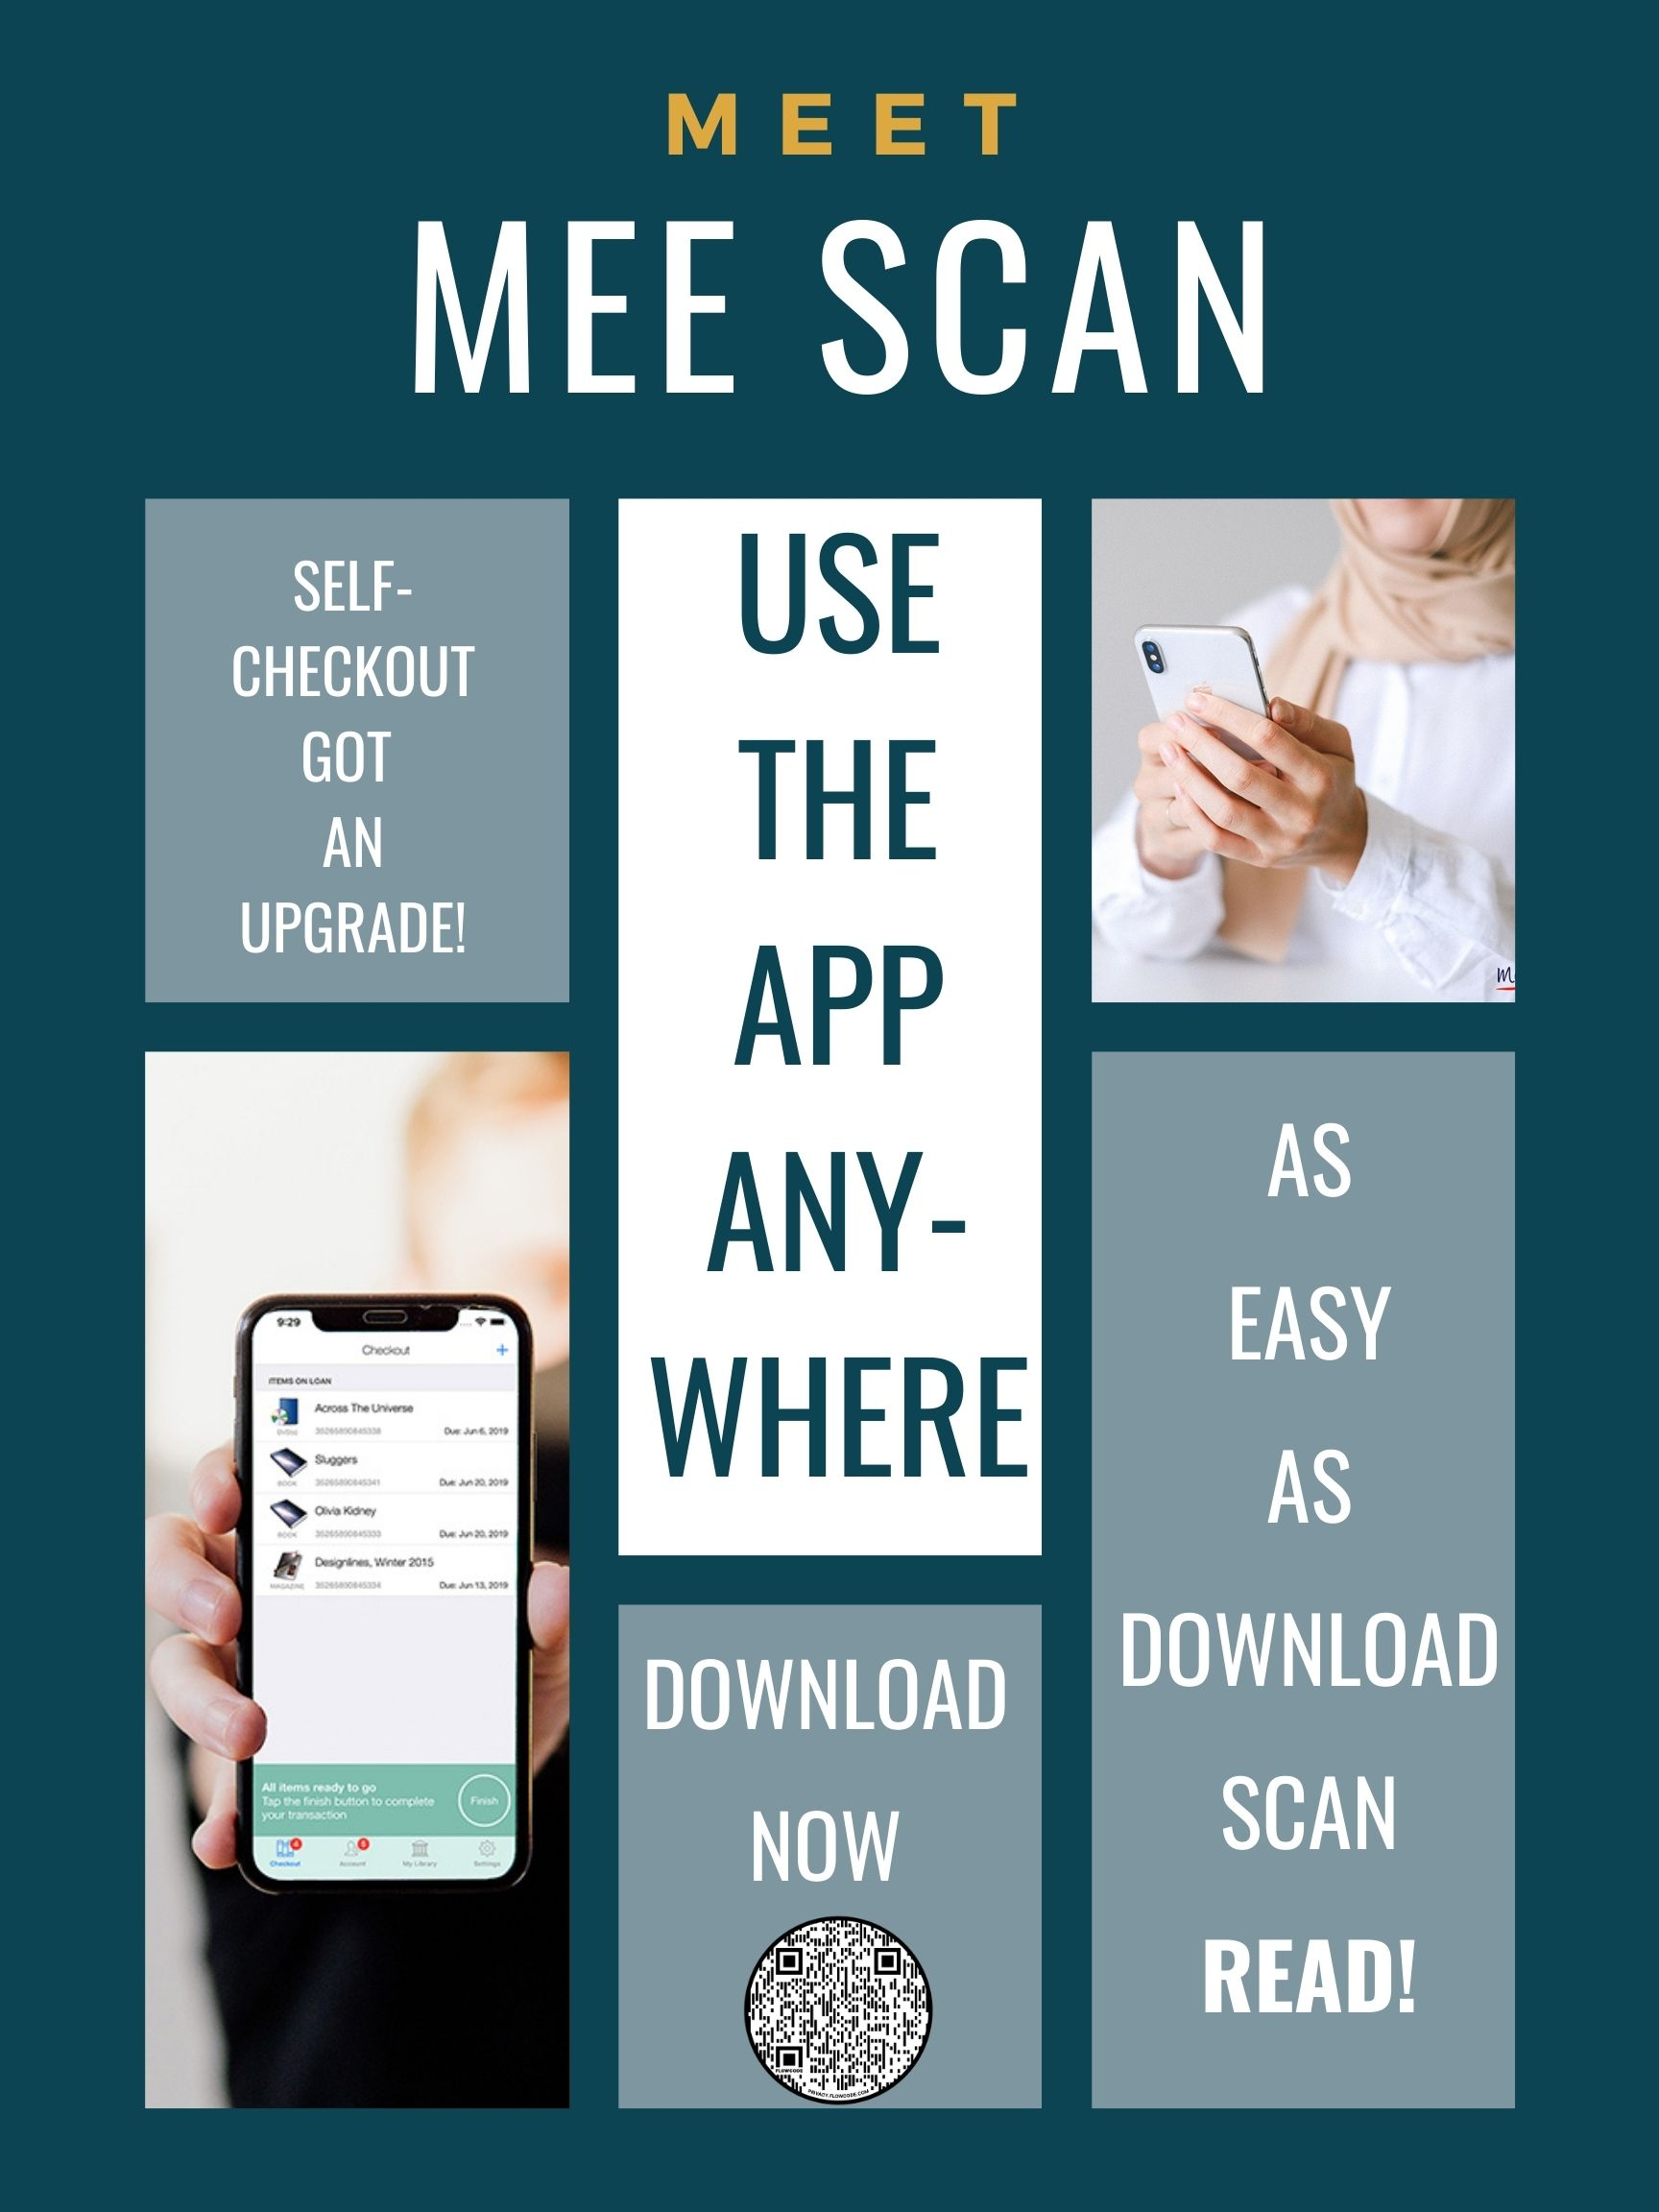 Download the MeeScan app to checkout books anywhere with your phone